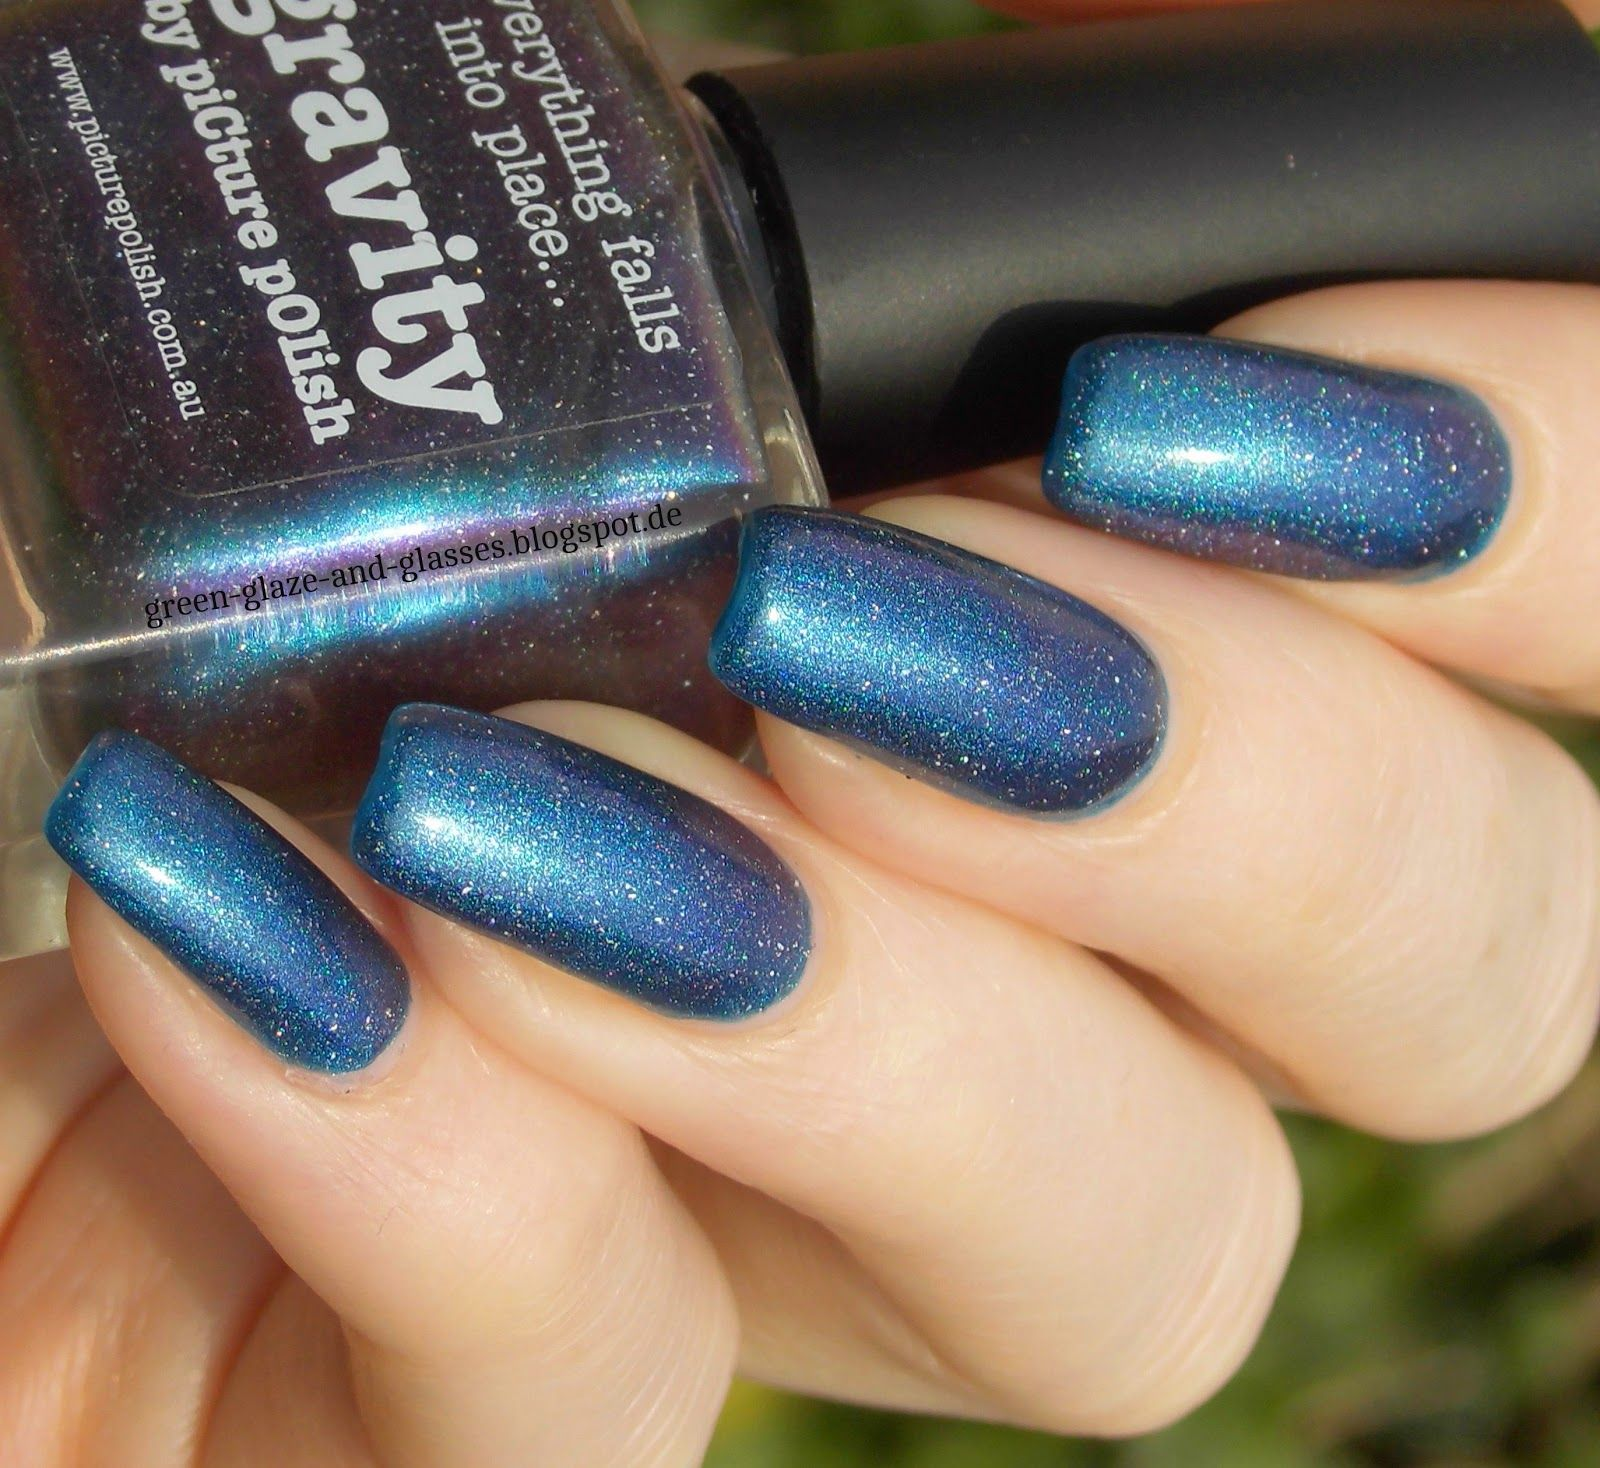 Green, Glaze & Glasses: Blue Friday - Picture Polish Gravity (over Hits Apolo)